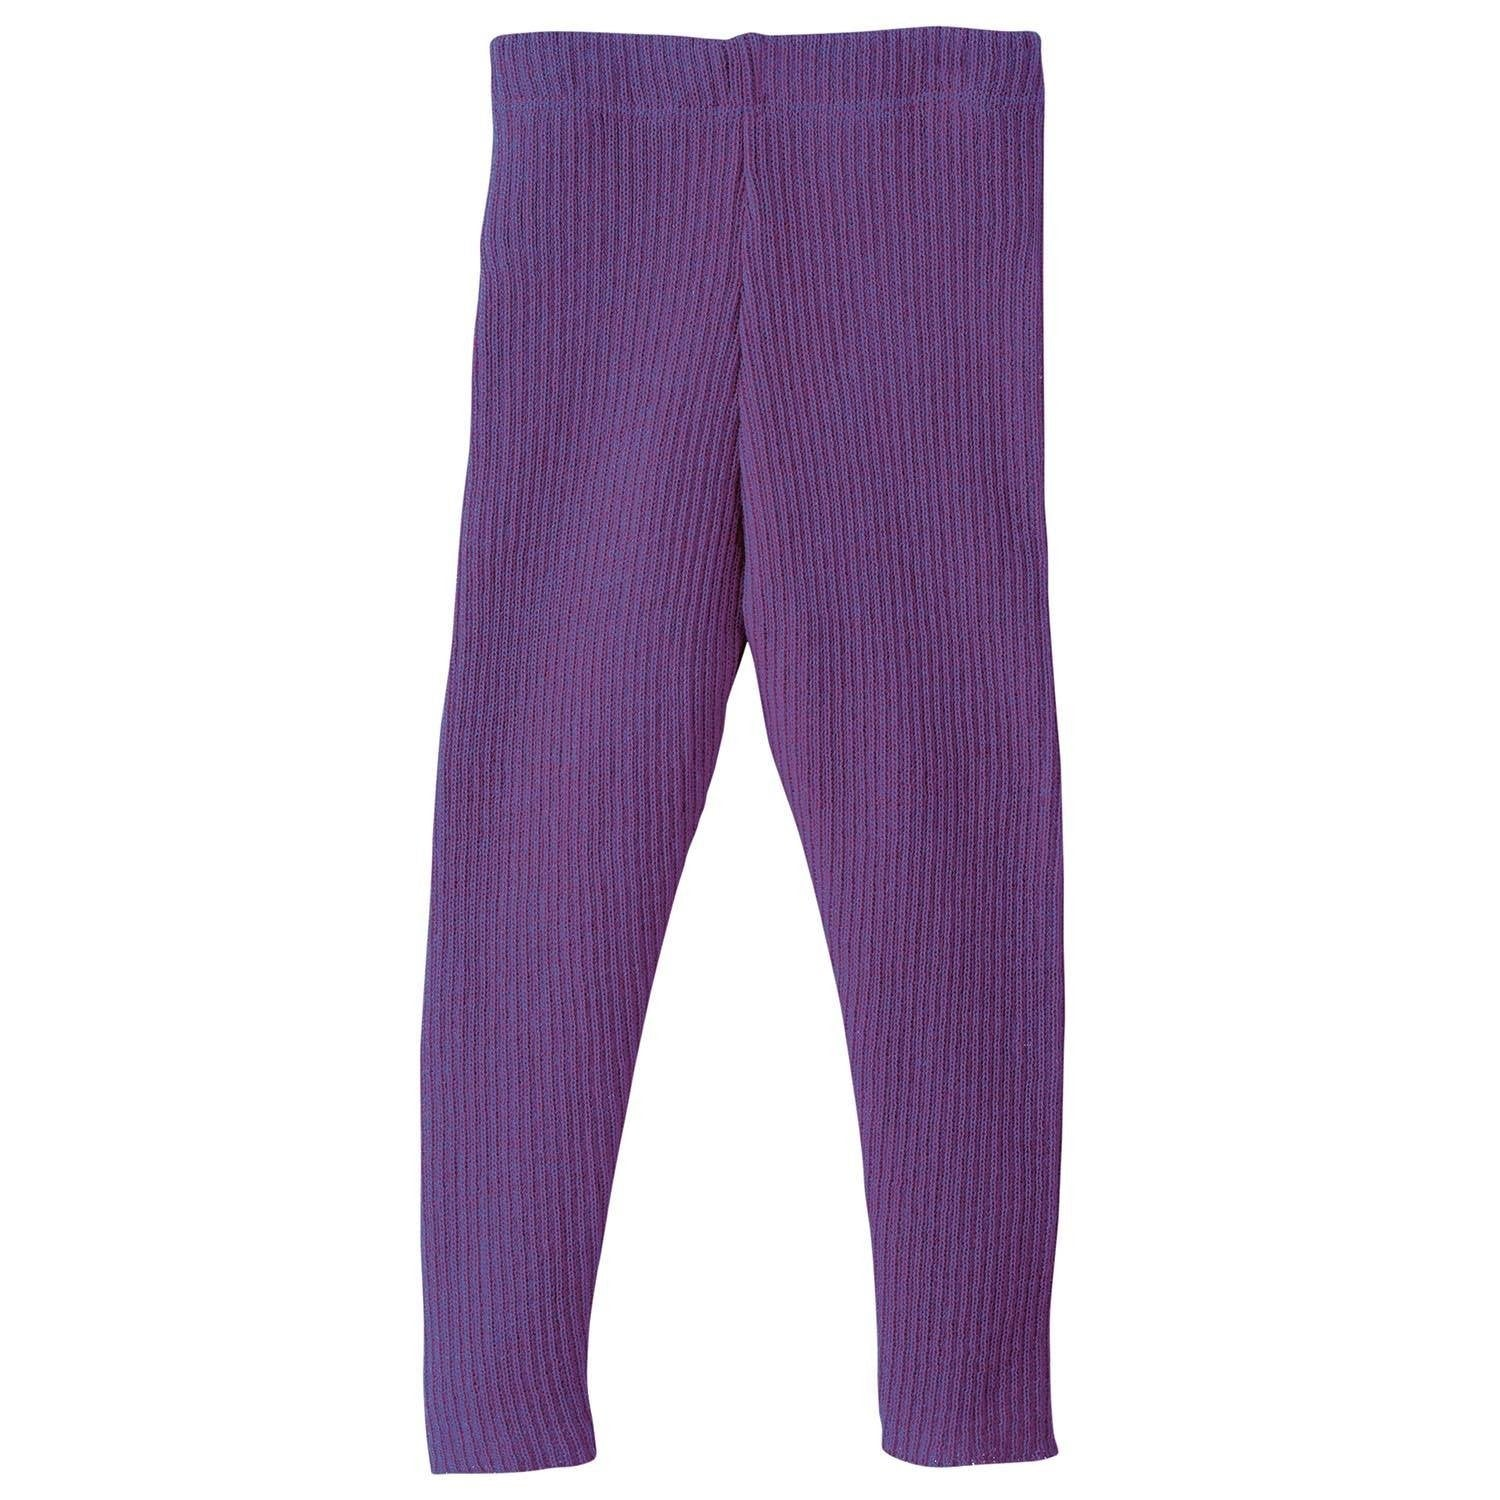 Image of   Disana bukser / leggings i strik - Blomme